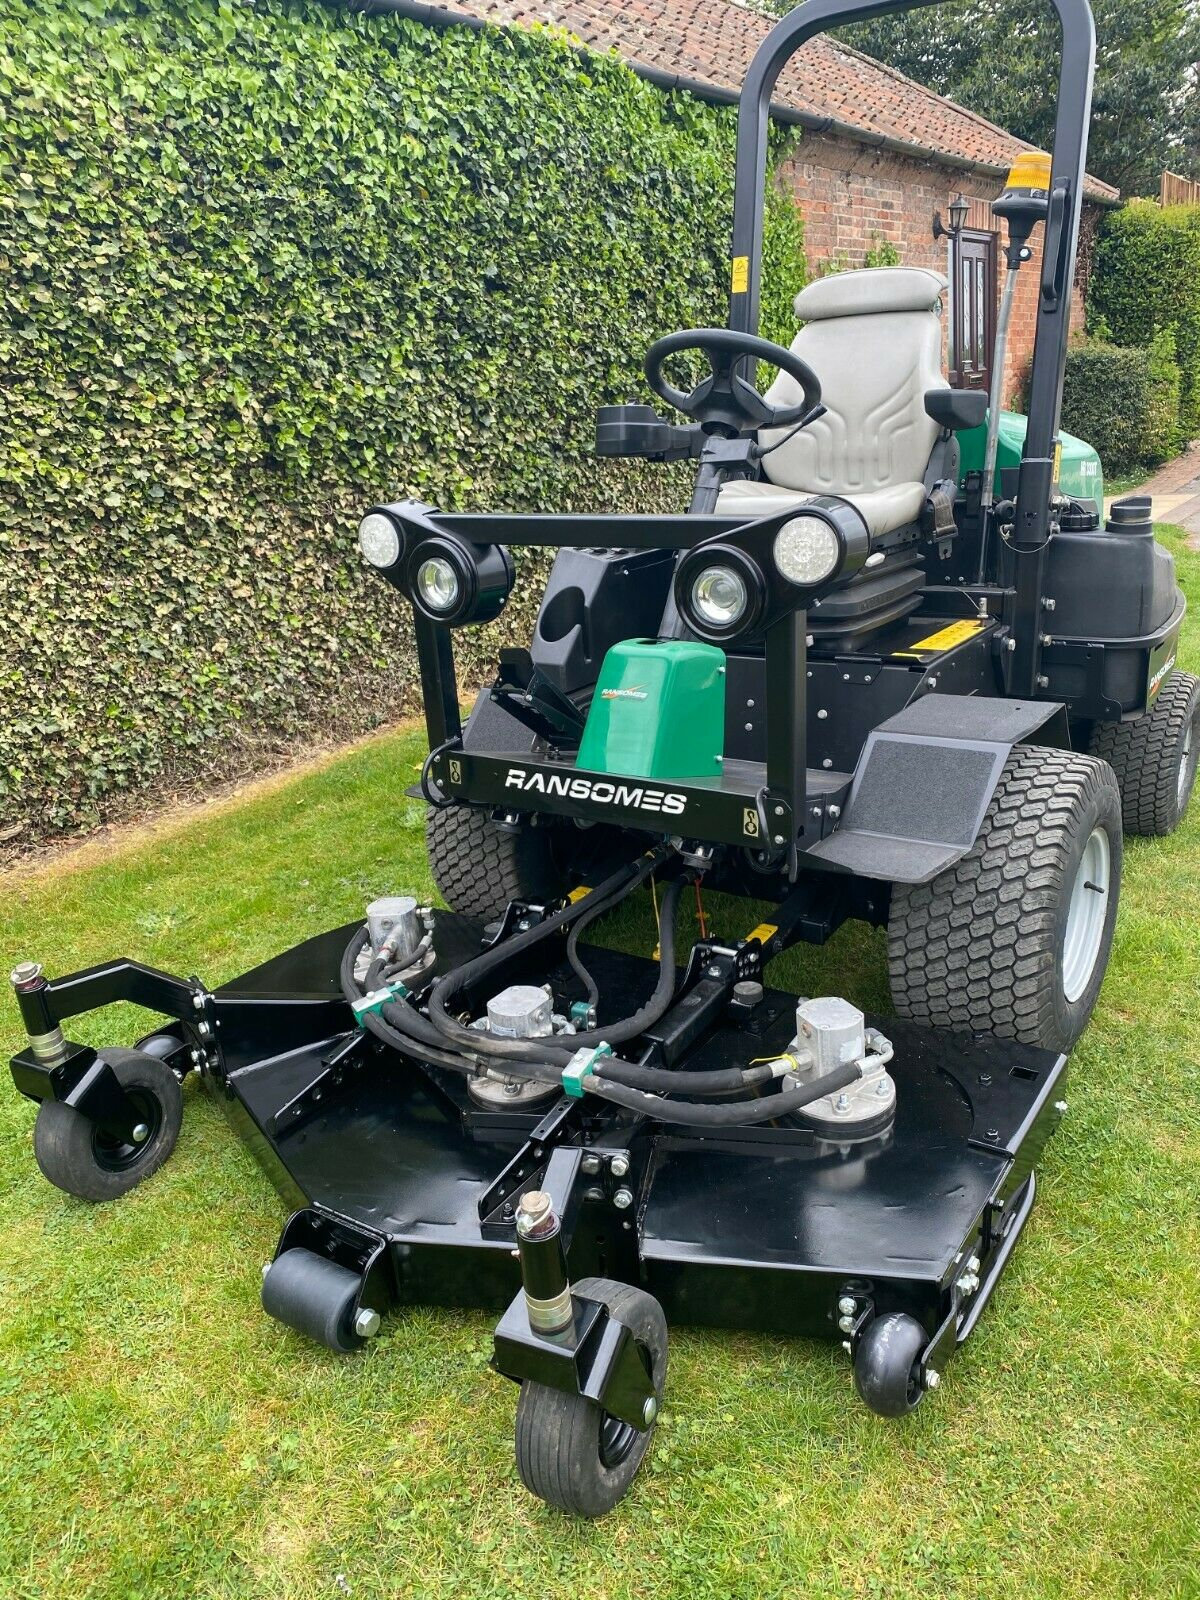 """RANSOMES HR3300T UPFRONT ROTARY, 60"""" CUT, 4x4, DIESEL, YEAR 2014, RIDE ON MOWER *PLUS VAT* - Image 4 of 10"""